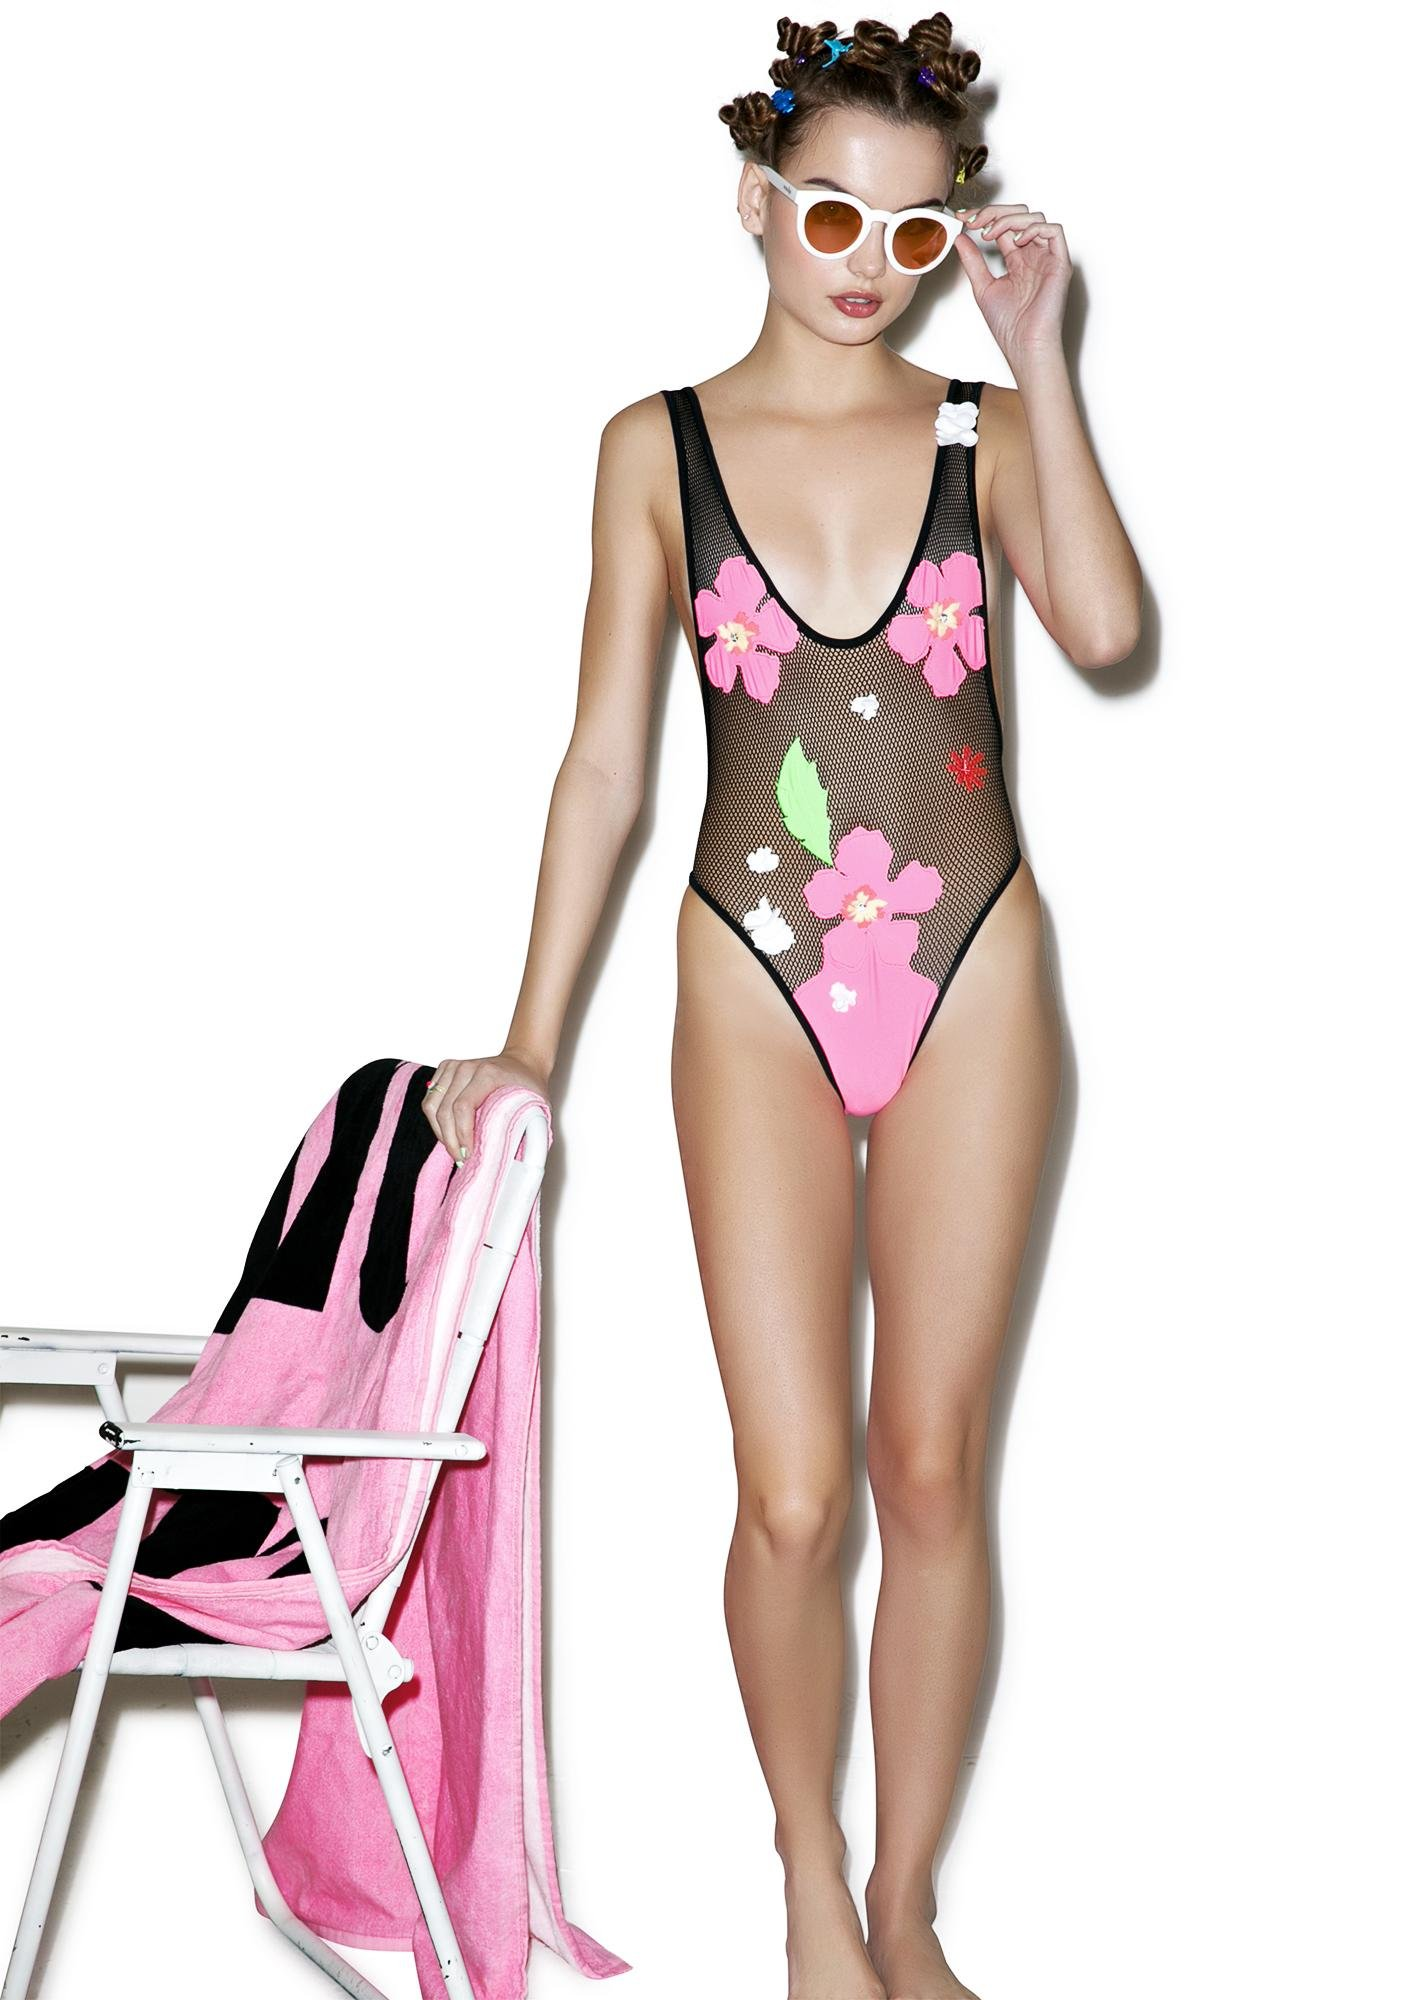 Lee + Lani The Hibiscus One Piece